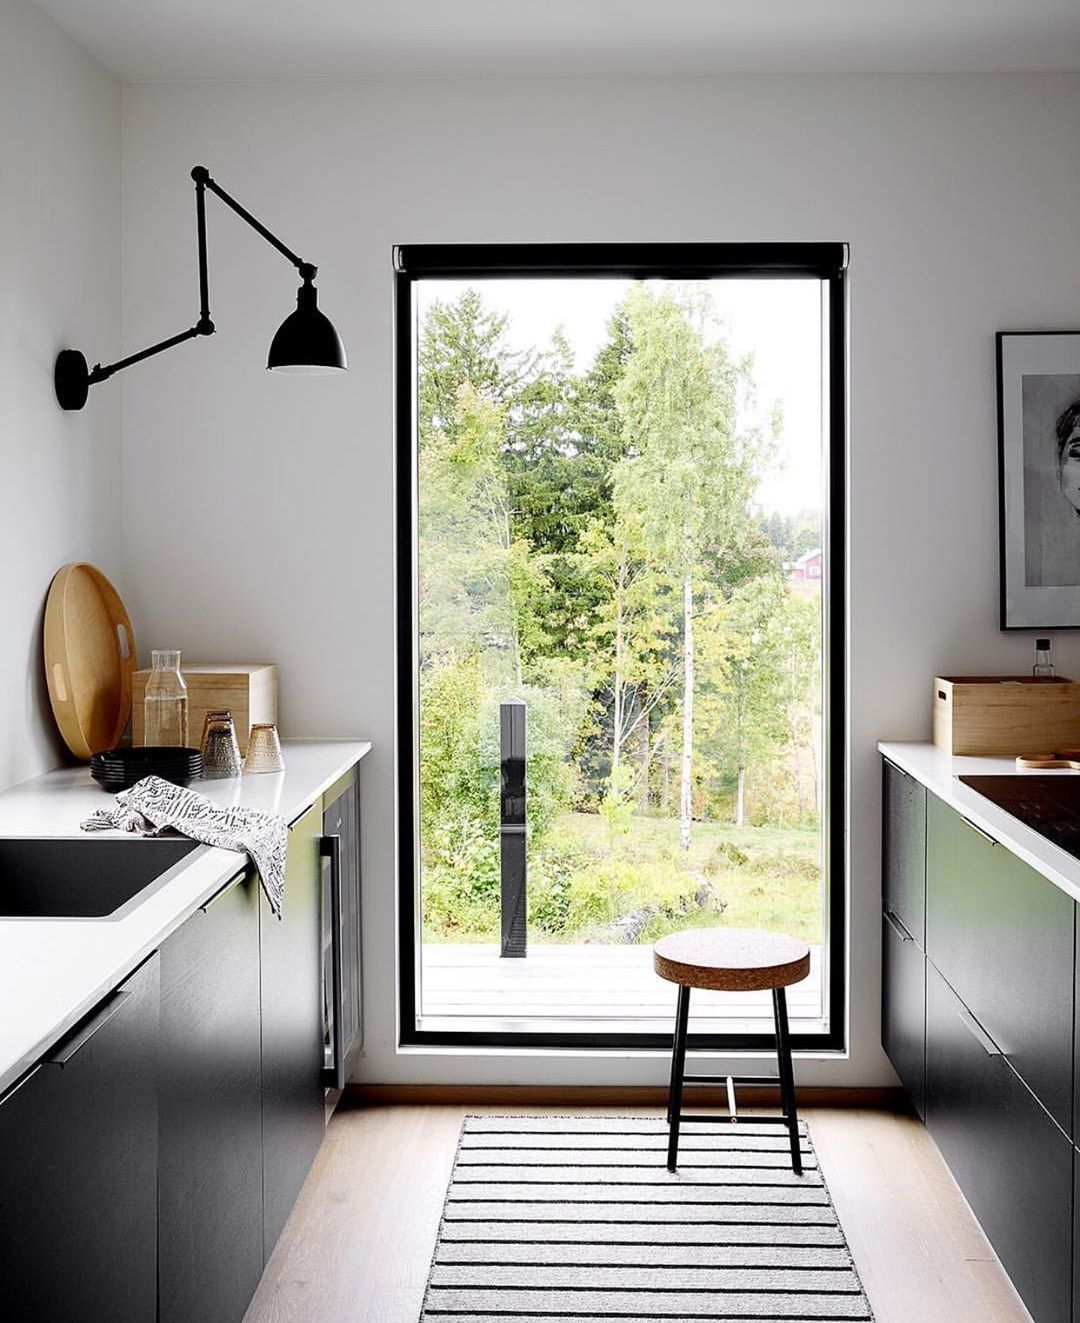 Interior Scandinavian Homes On Instagram How Gorgeous Is This